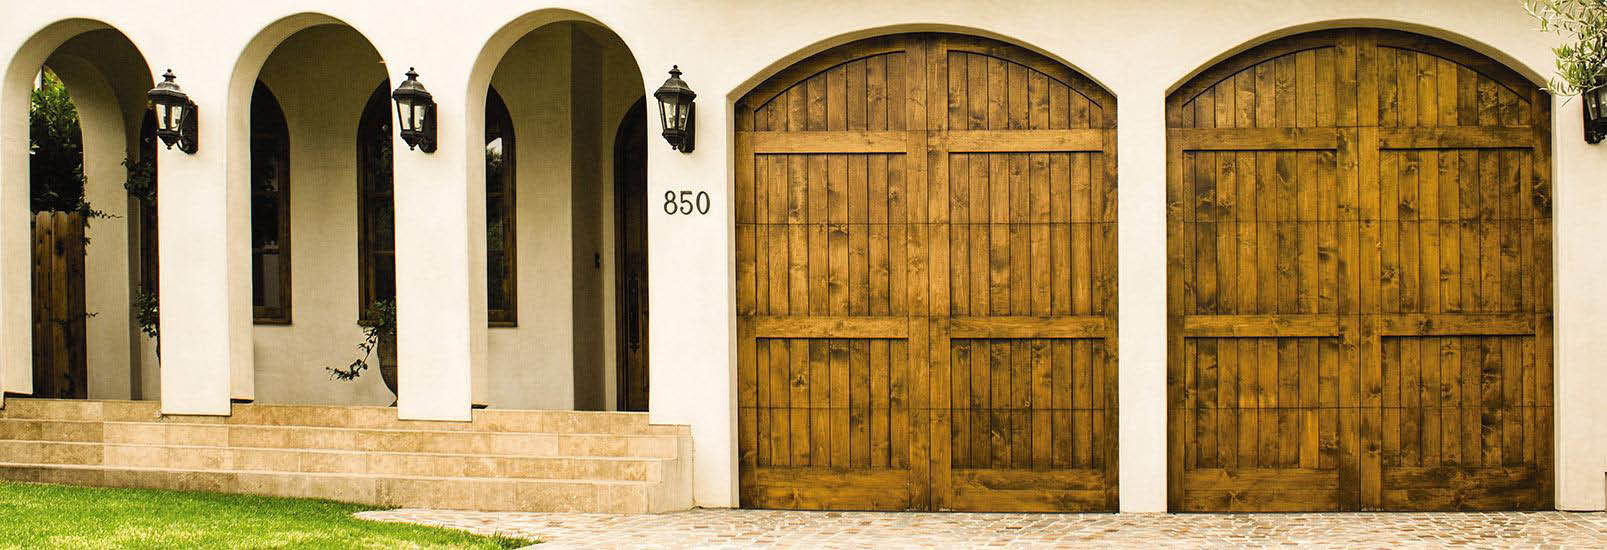 The best prices on garage doors in arizona.Best Garage Door Parts in AZ Best : dalton doors - pezcame.com